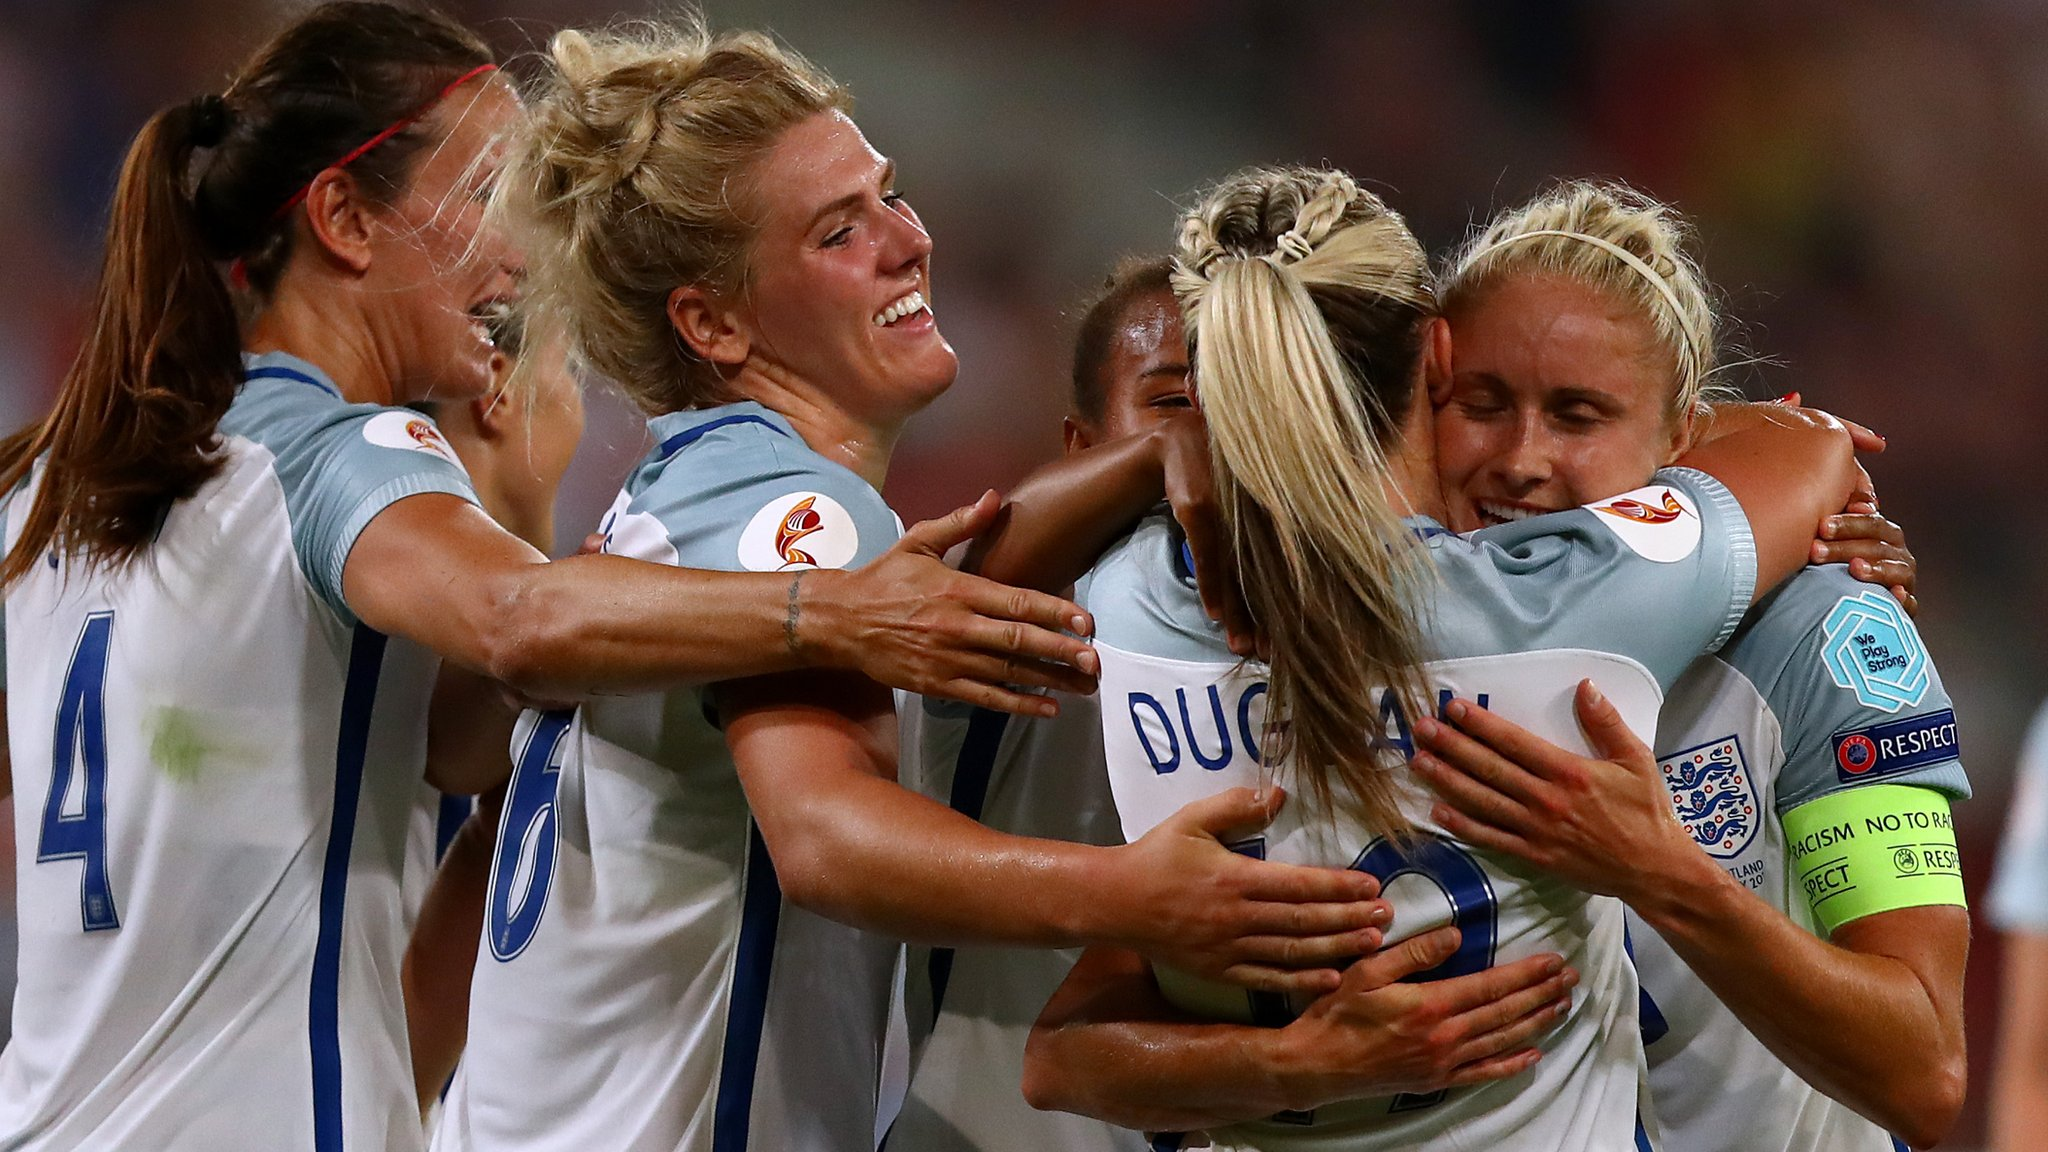 More to come from England after 6-0 win - boss Sampson